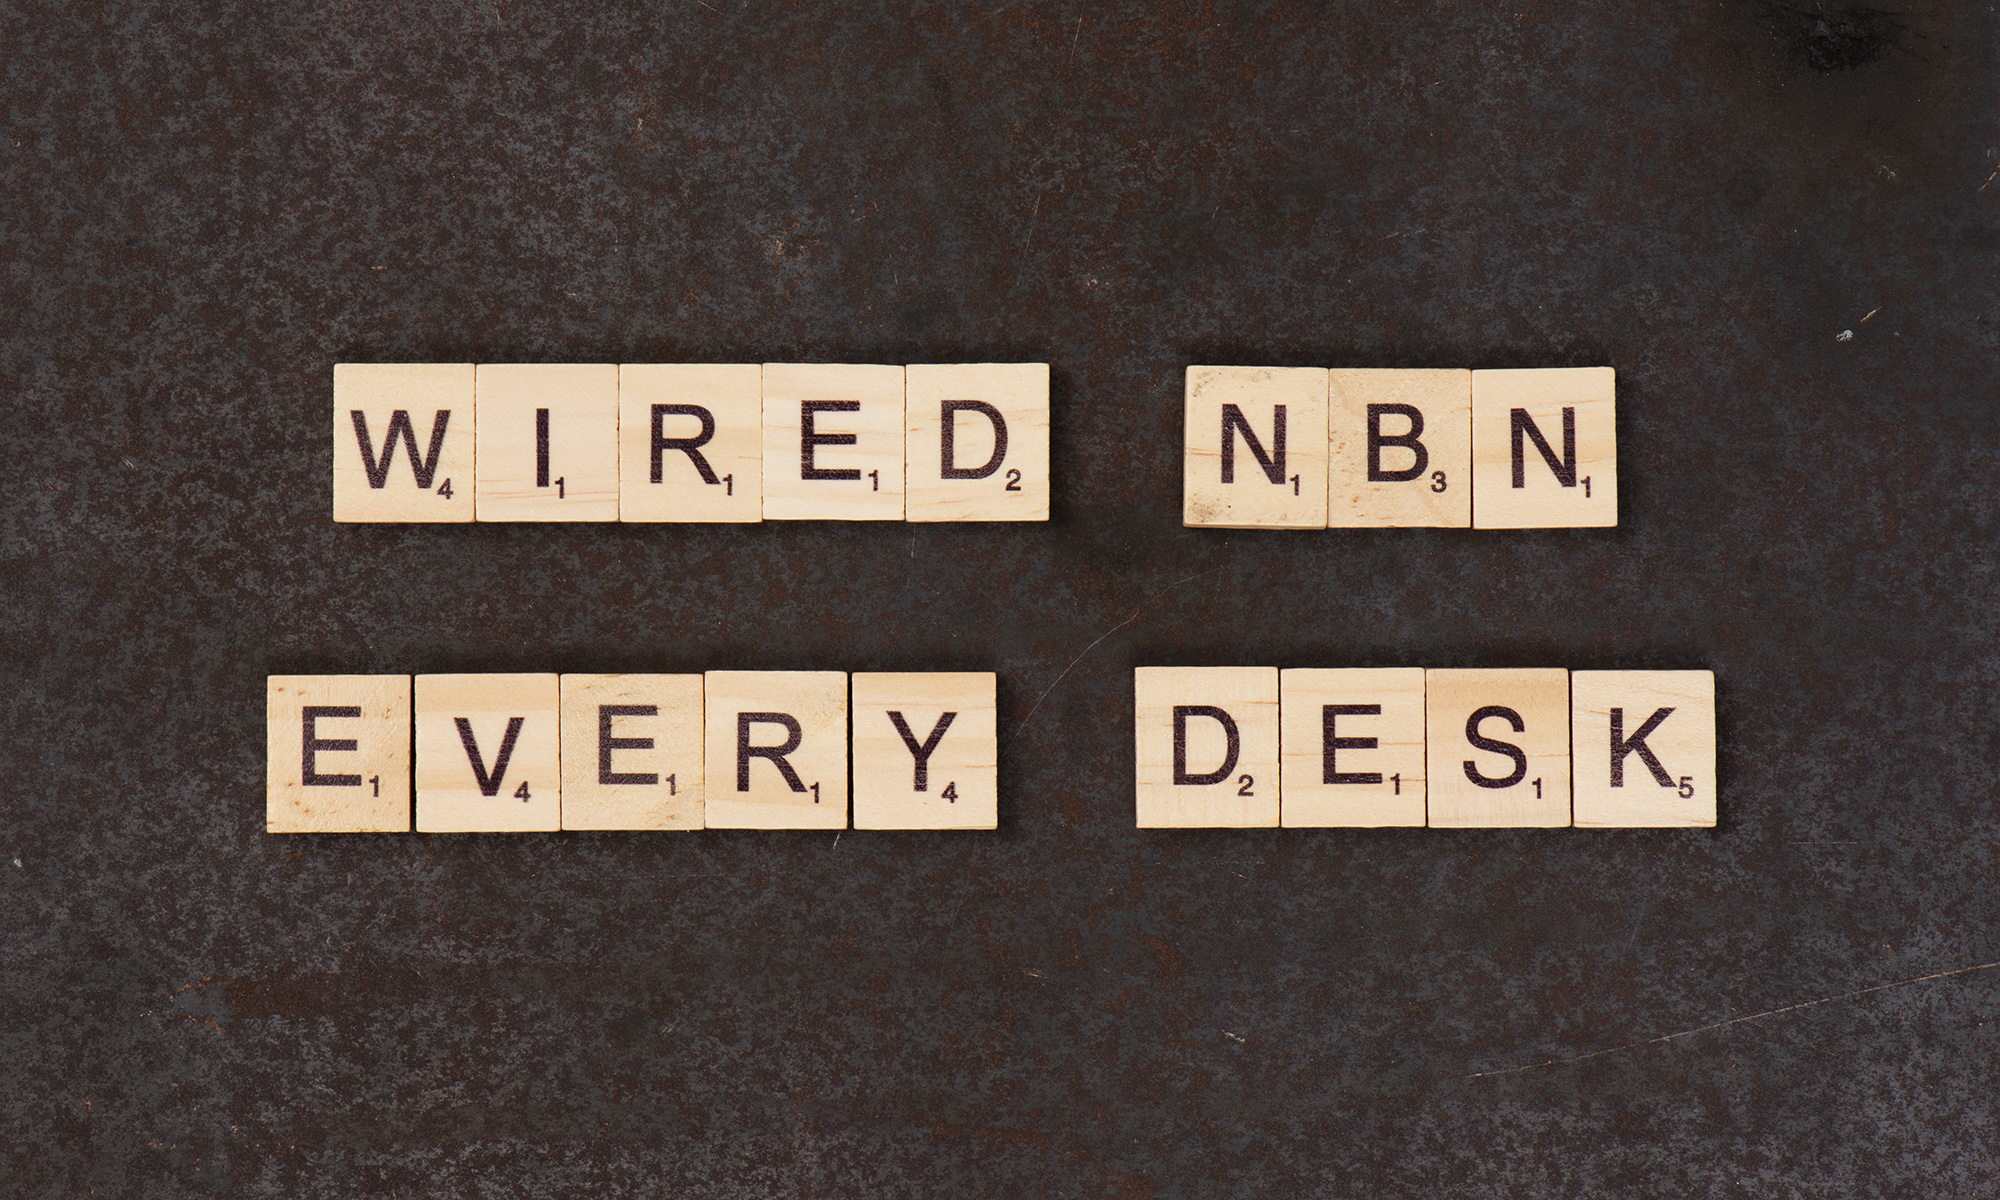 Wired NBN Every Desk